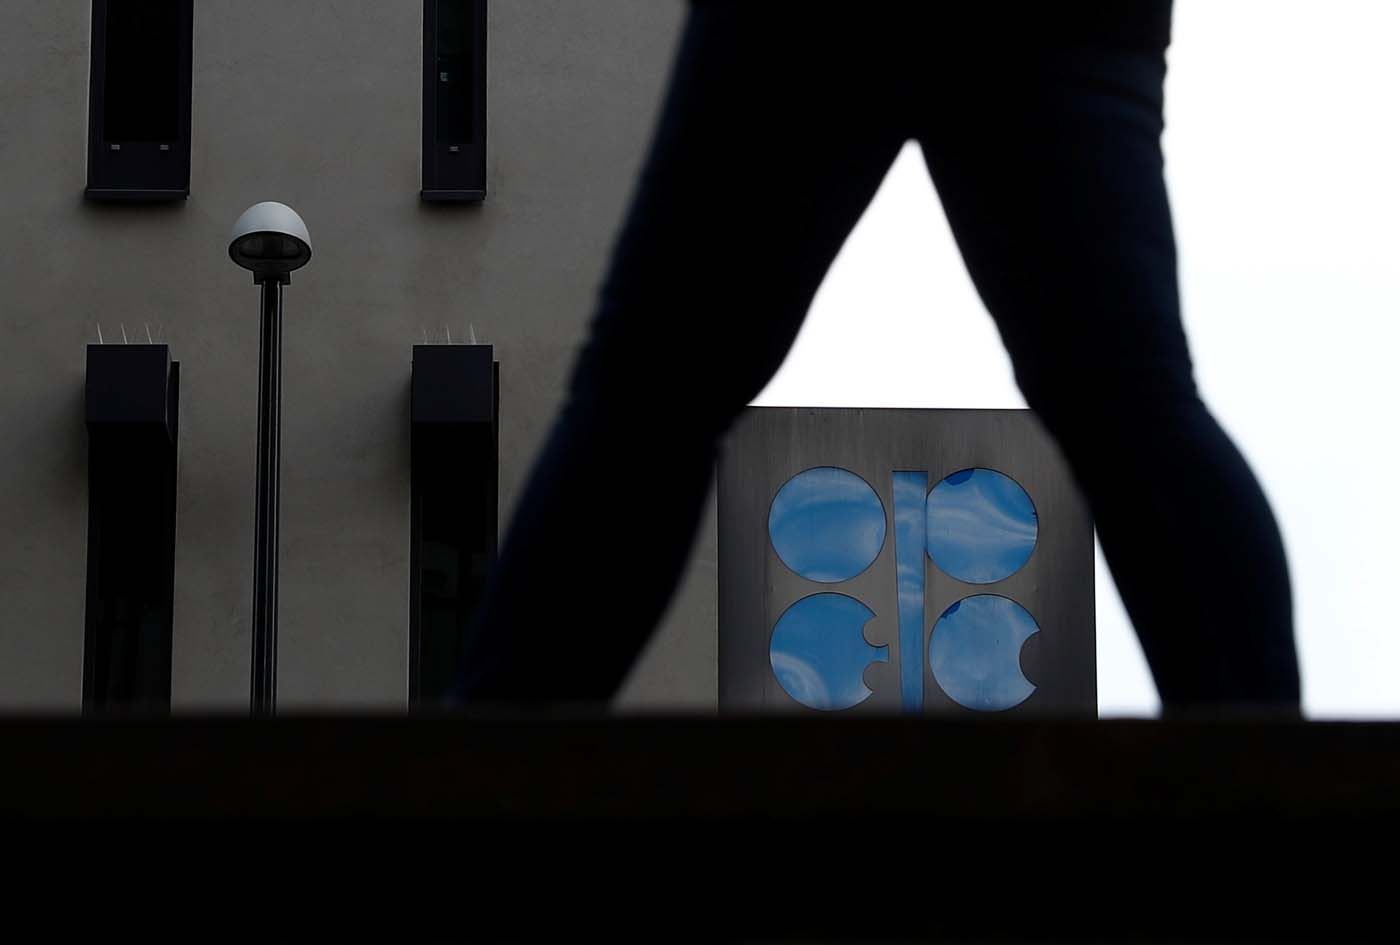 A person passes the logo of the Organization of the Petroleum Exporting Countries (OPEC) in front of its headquarters in Vienna, Austria September 21, 2017. REUTERS/Leonhard Foeger